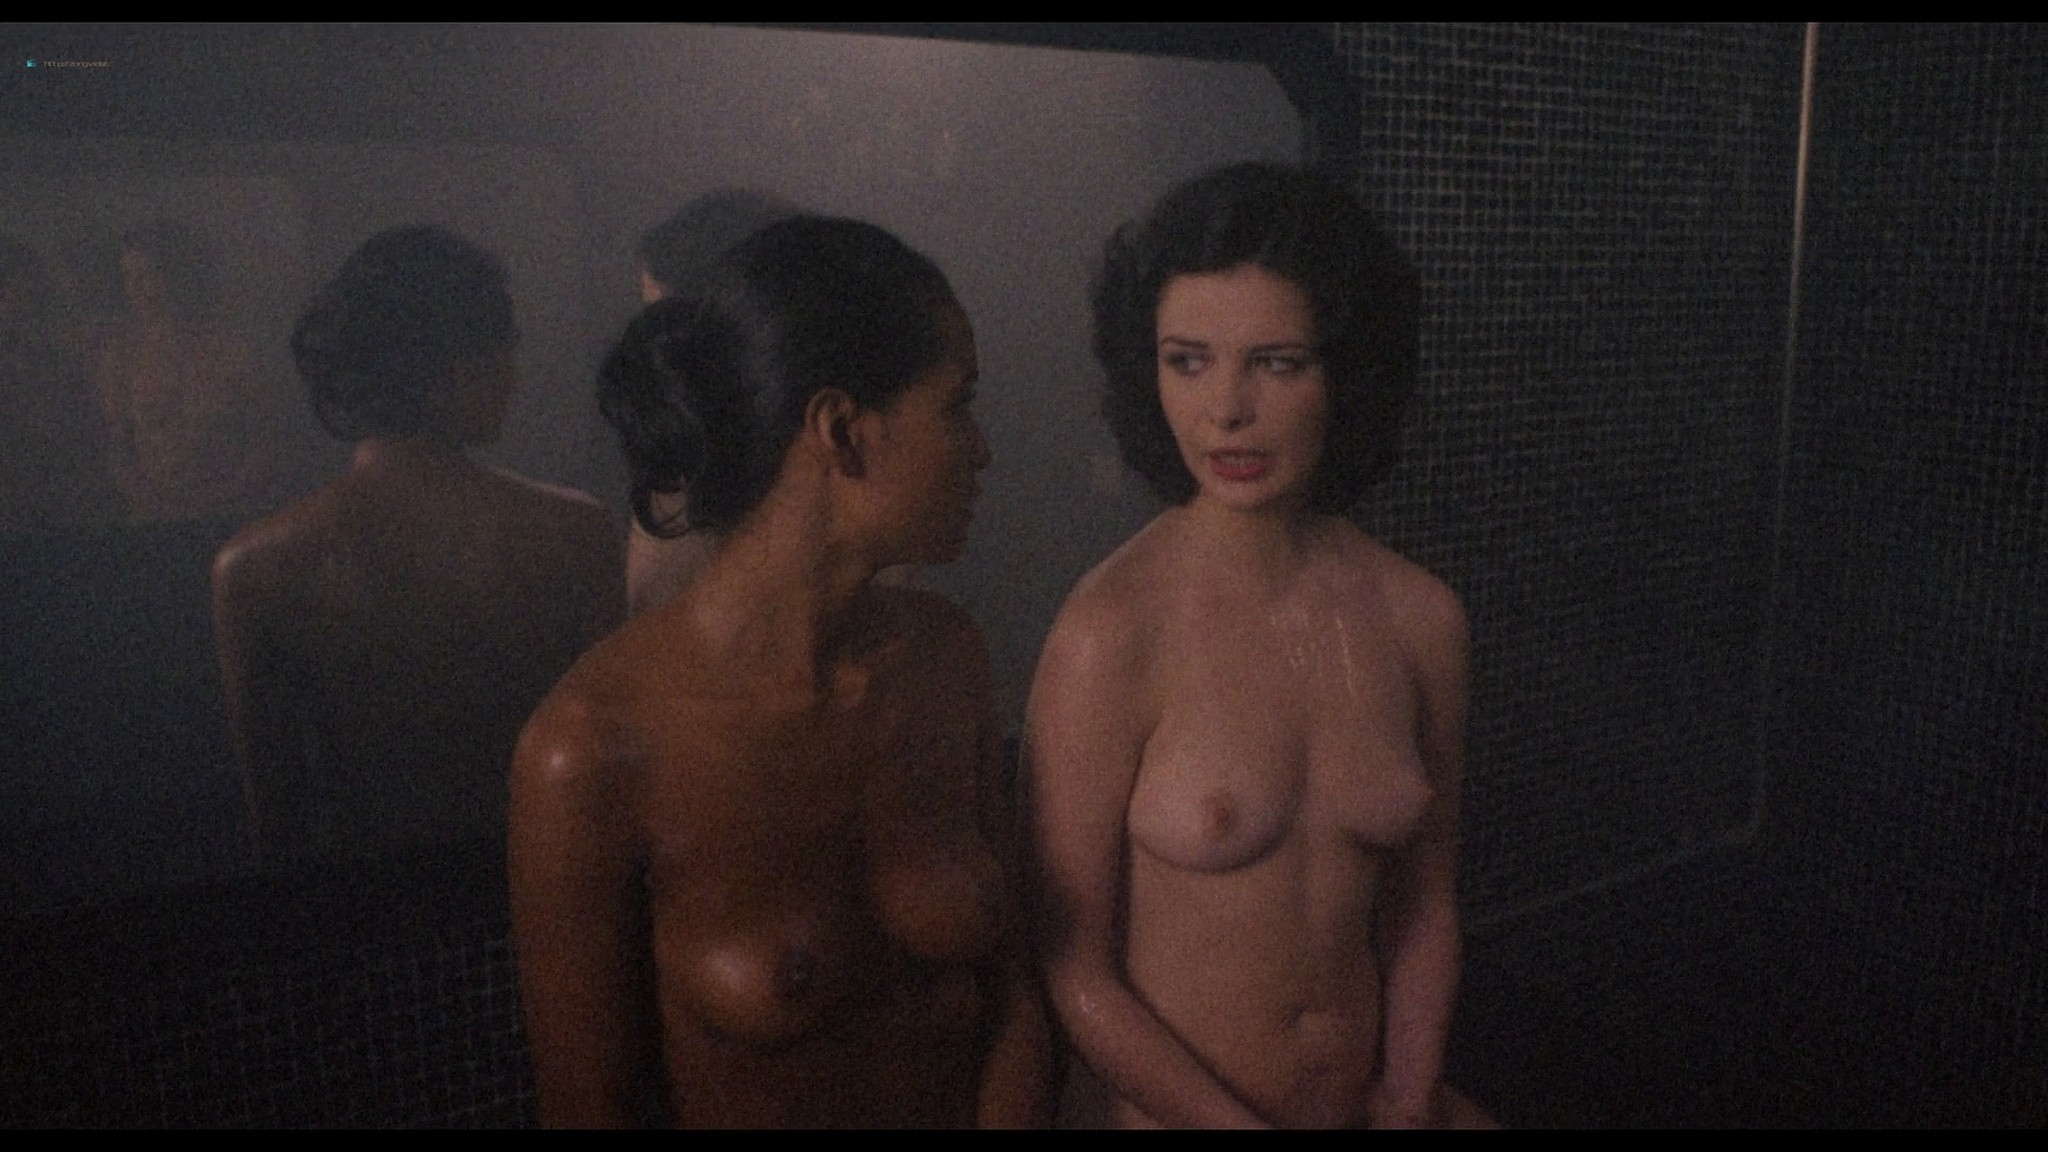 Laura Gemser nude full frontal other nude explicit sex - Emanuelle in America (1976) HD 1080p BluRay (14)